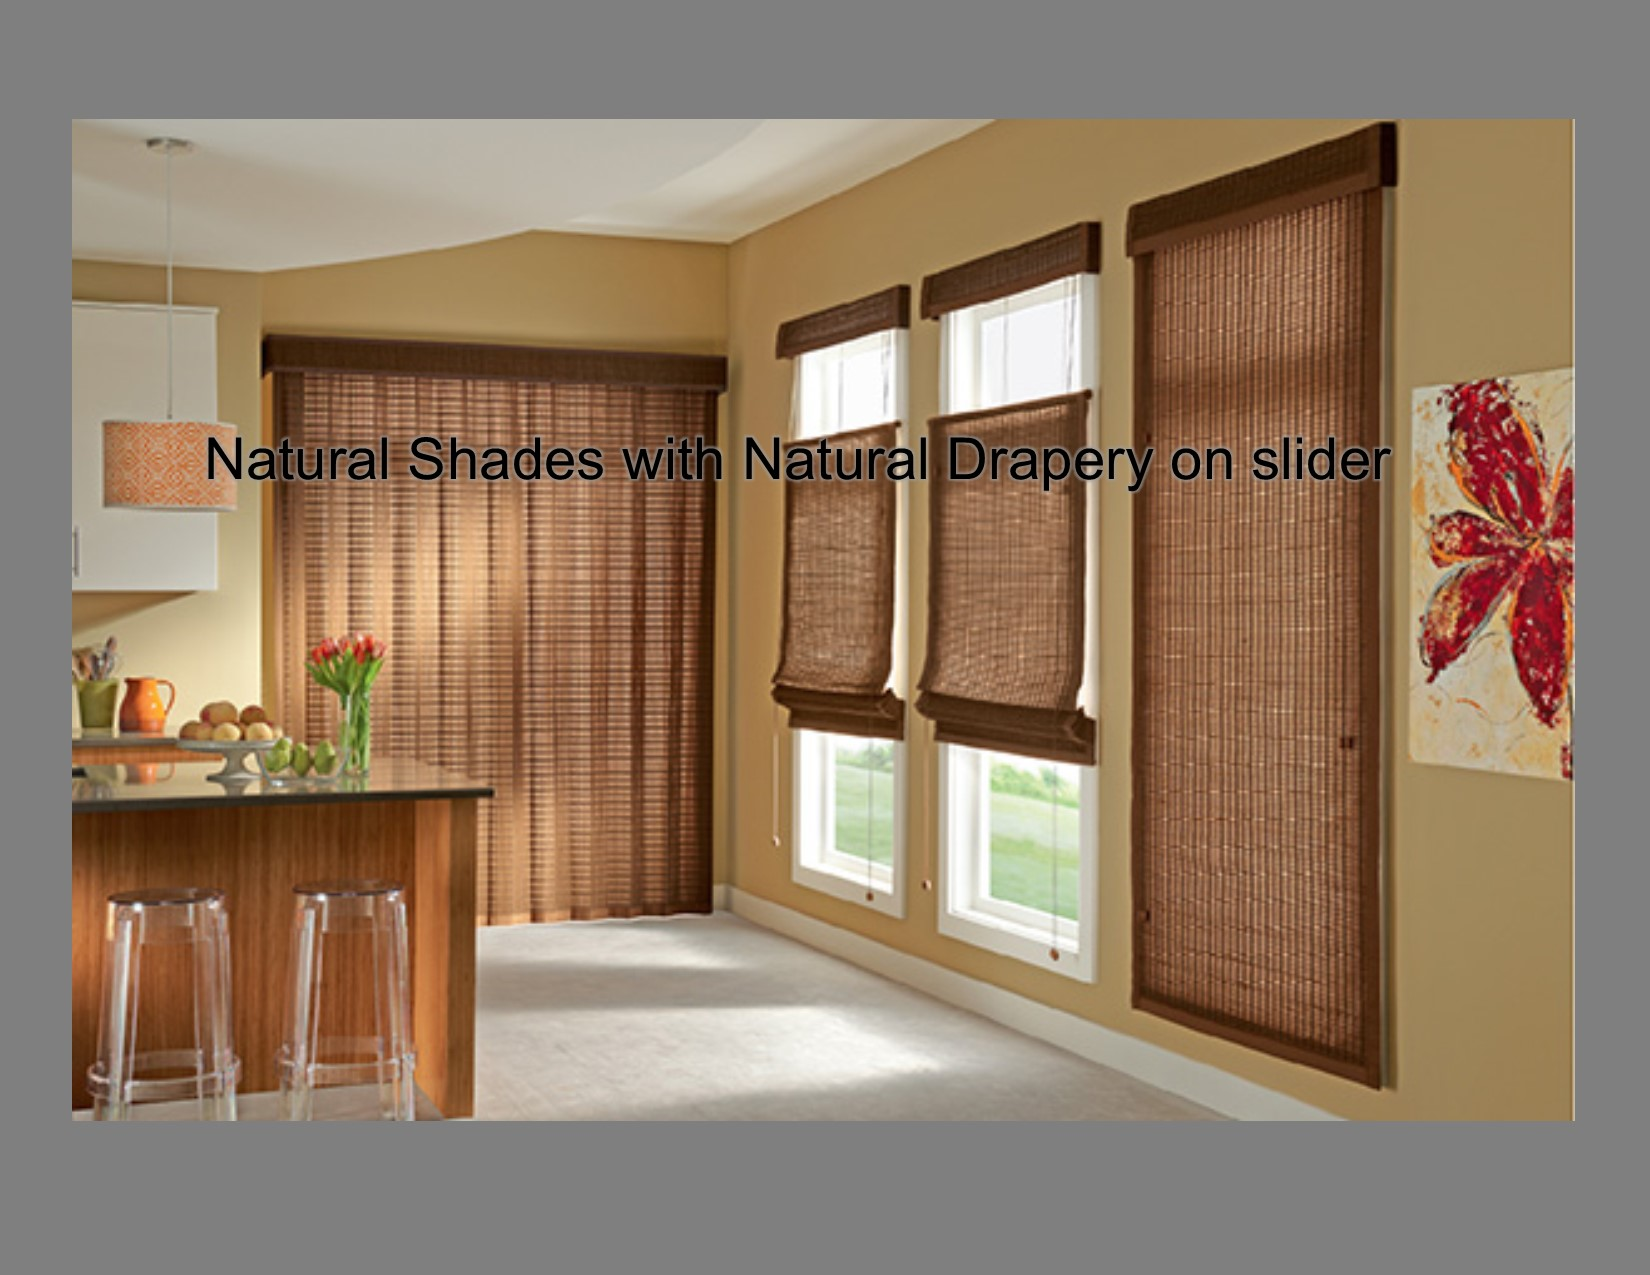 Natural_Shades_with_Natural_Drapery.jpg